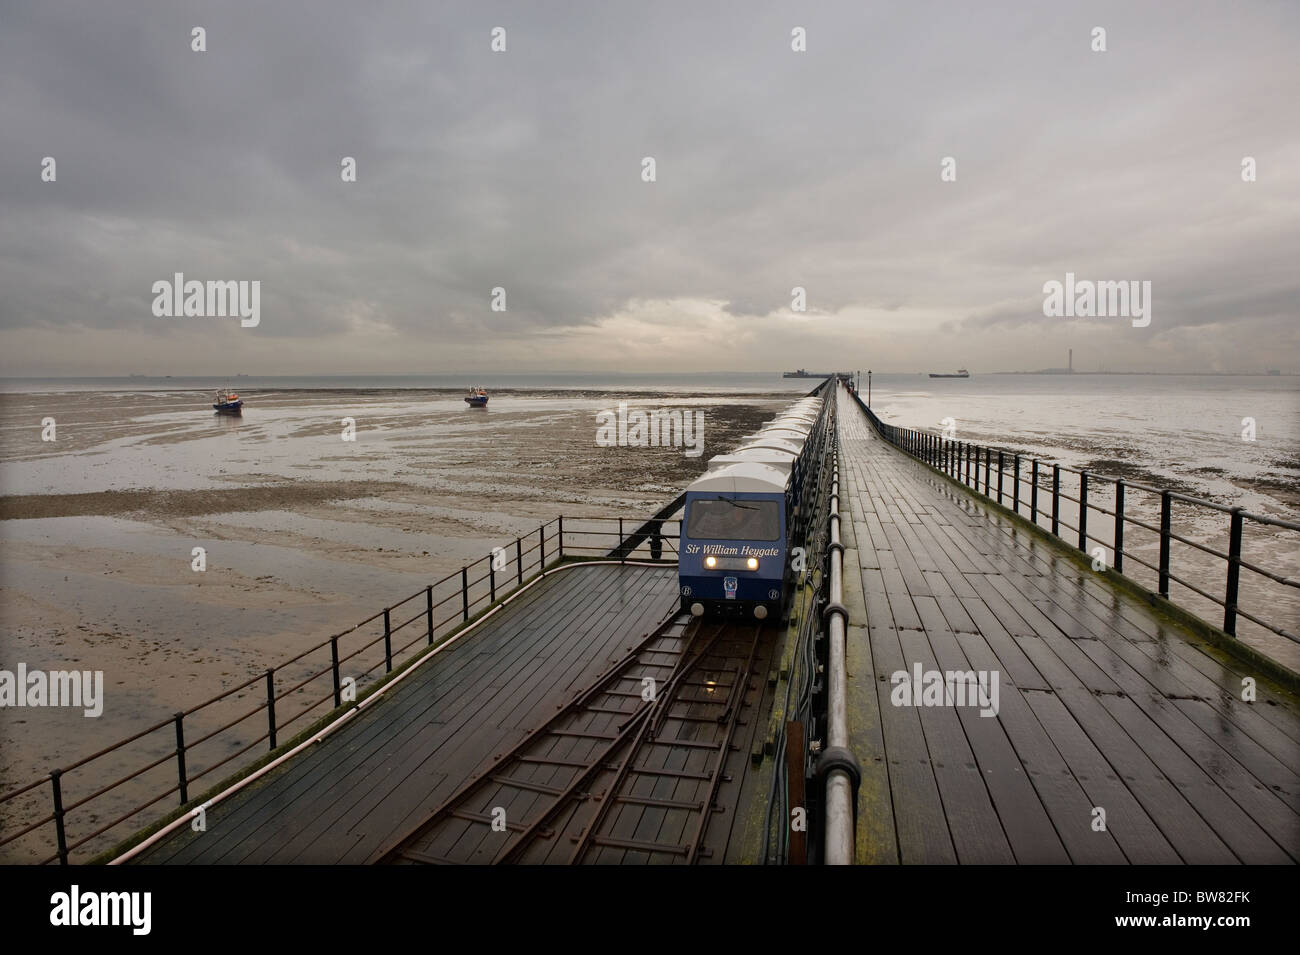 Southend Pier, Southend on Sea, Essex, Britain. A wet day out on Southend Pier pier which is one and a quarter miles - Stock Image